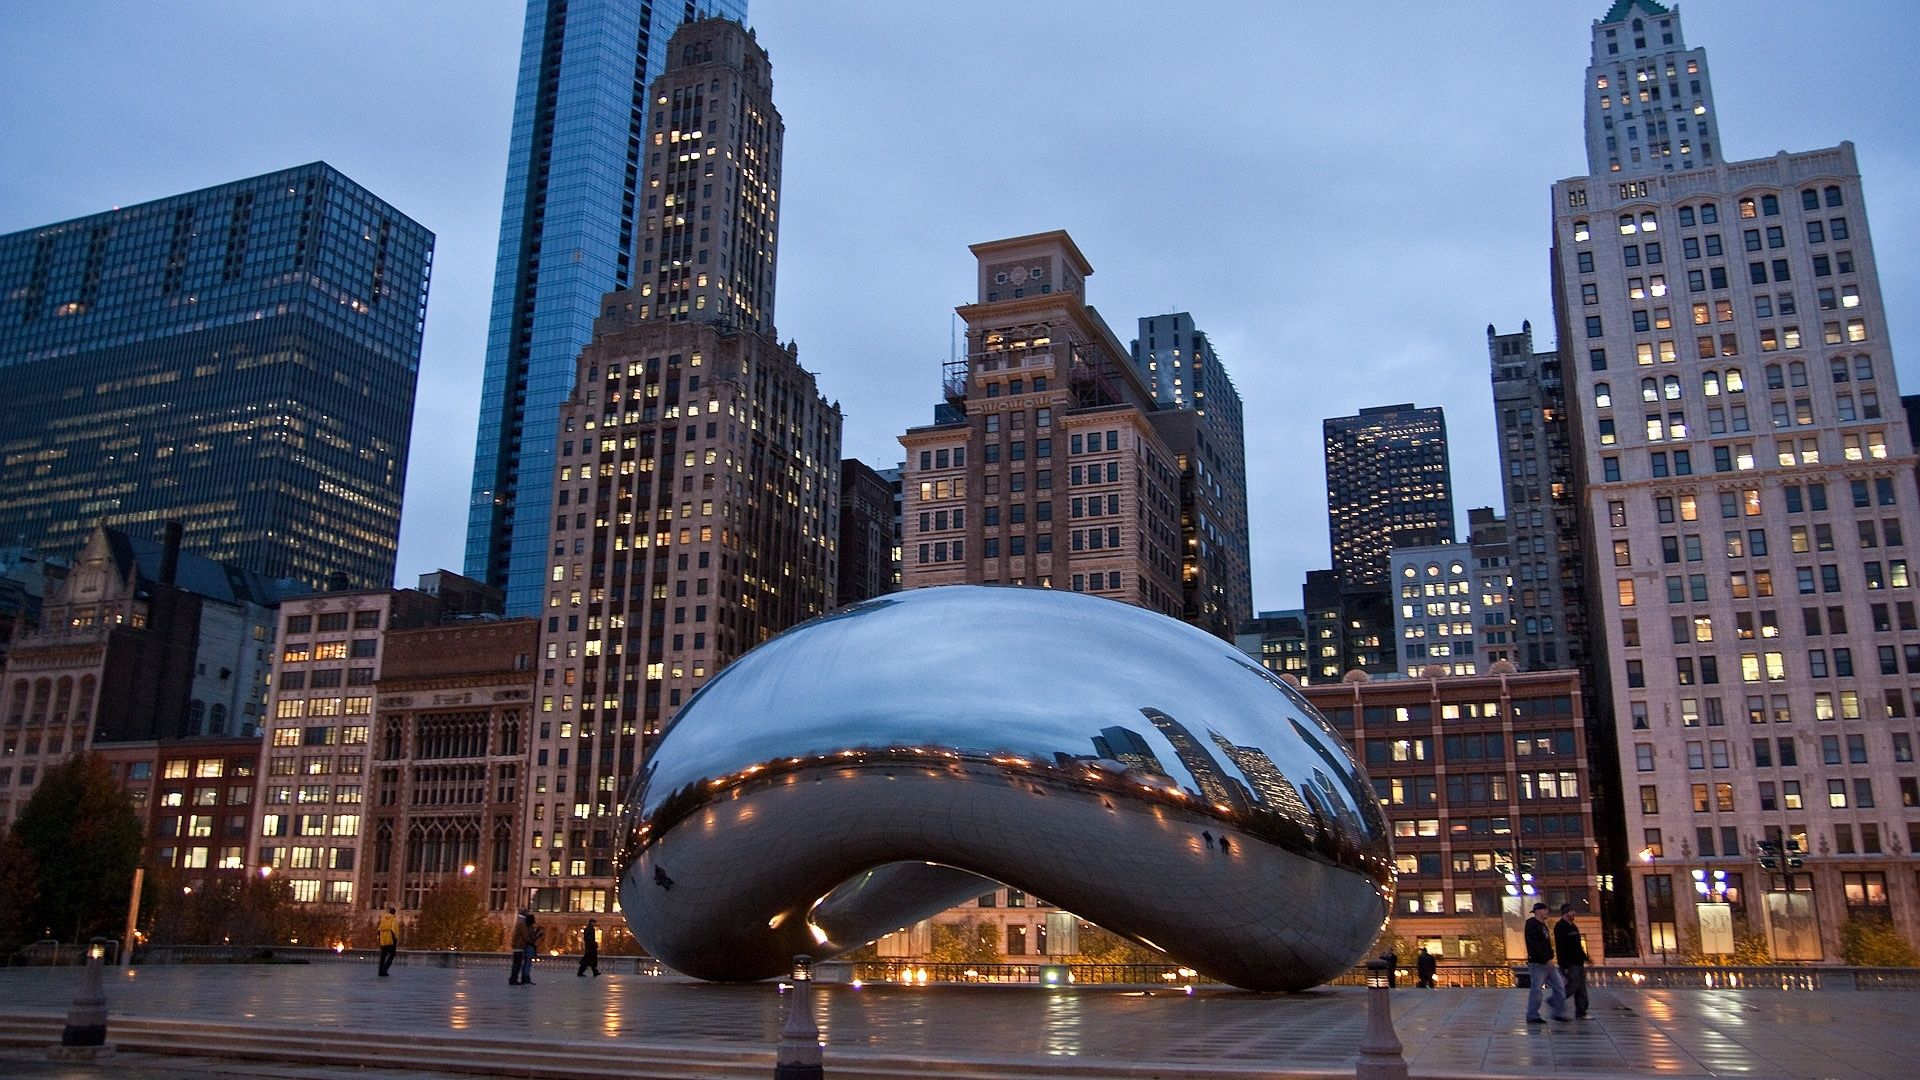 HD Wall Paper 1920X1080 Chicago above is Cloud Gate